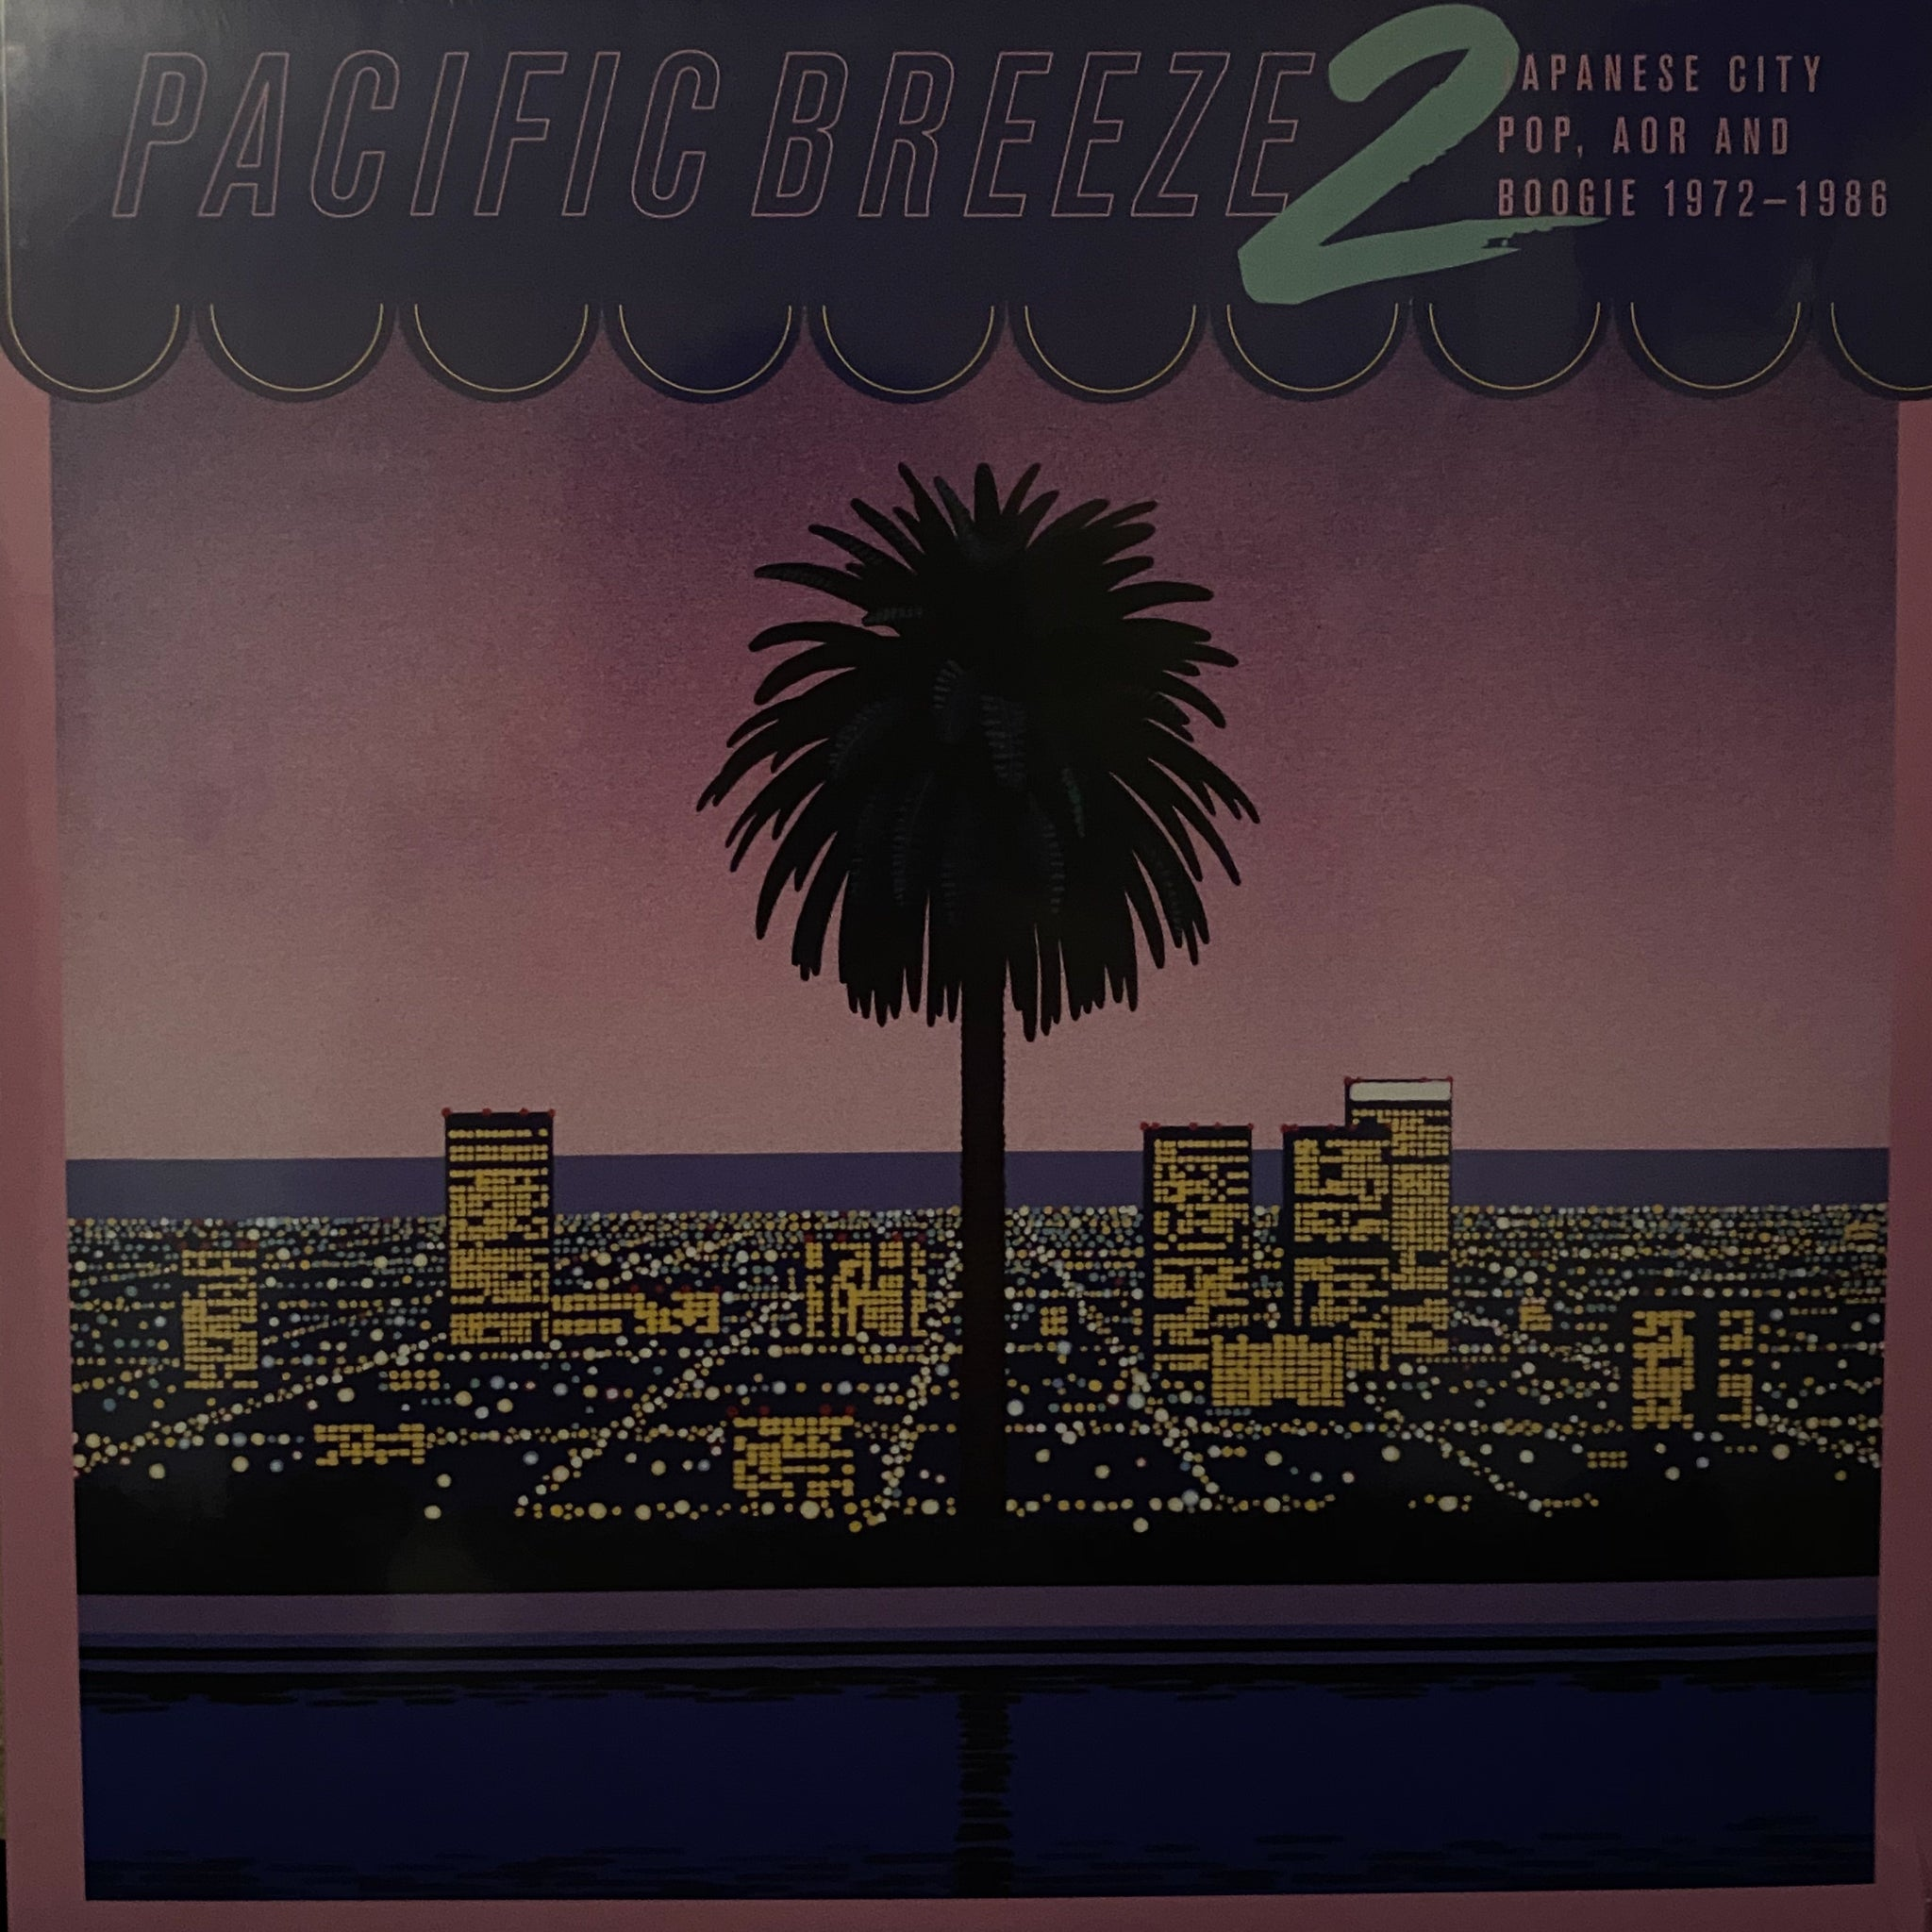 VA ‎– Pacific Breeze 2: Japanese City Pop, AOR & Boogie 1972-1986